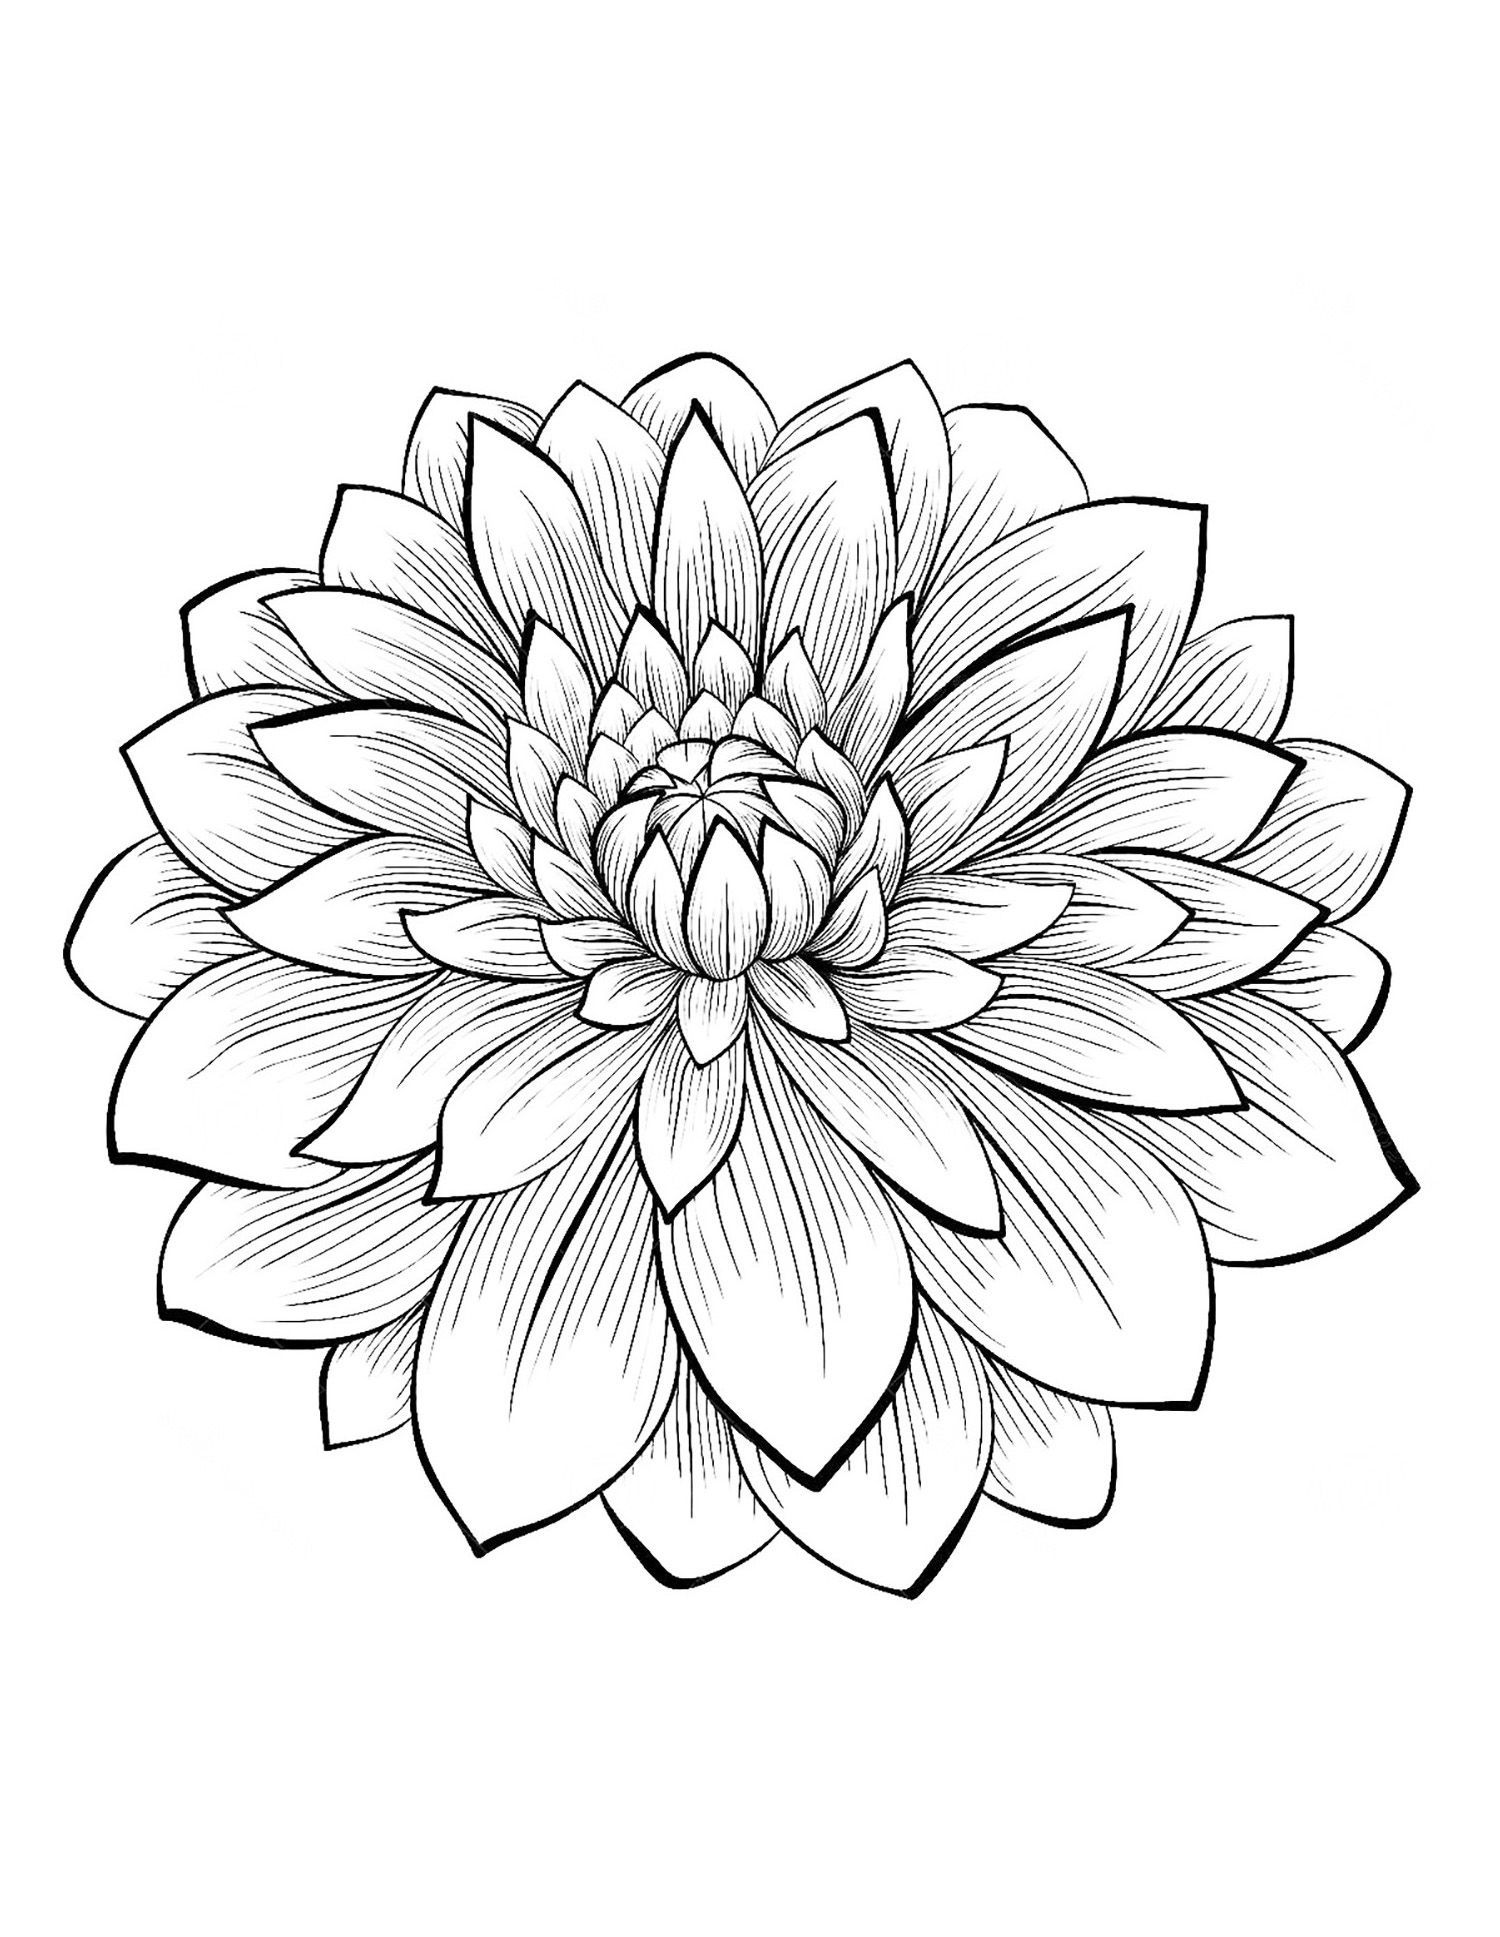 Incredible Dahlia Flower U Vegetation Coloring Pages For Adults